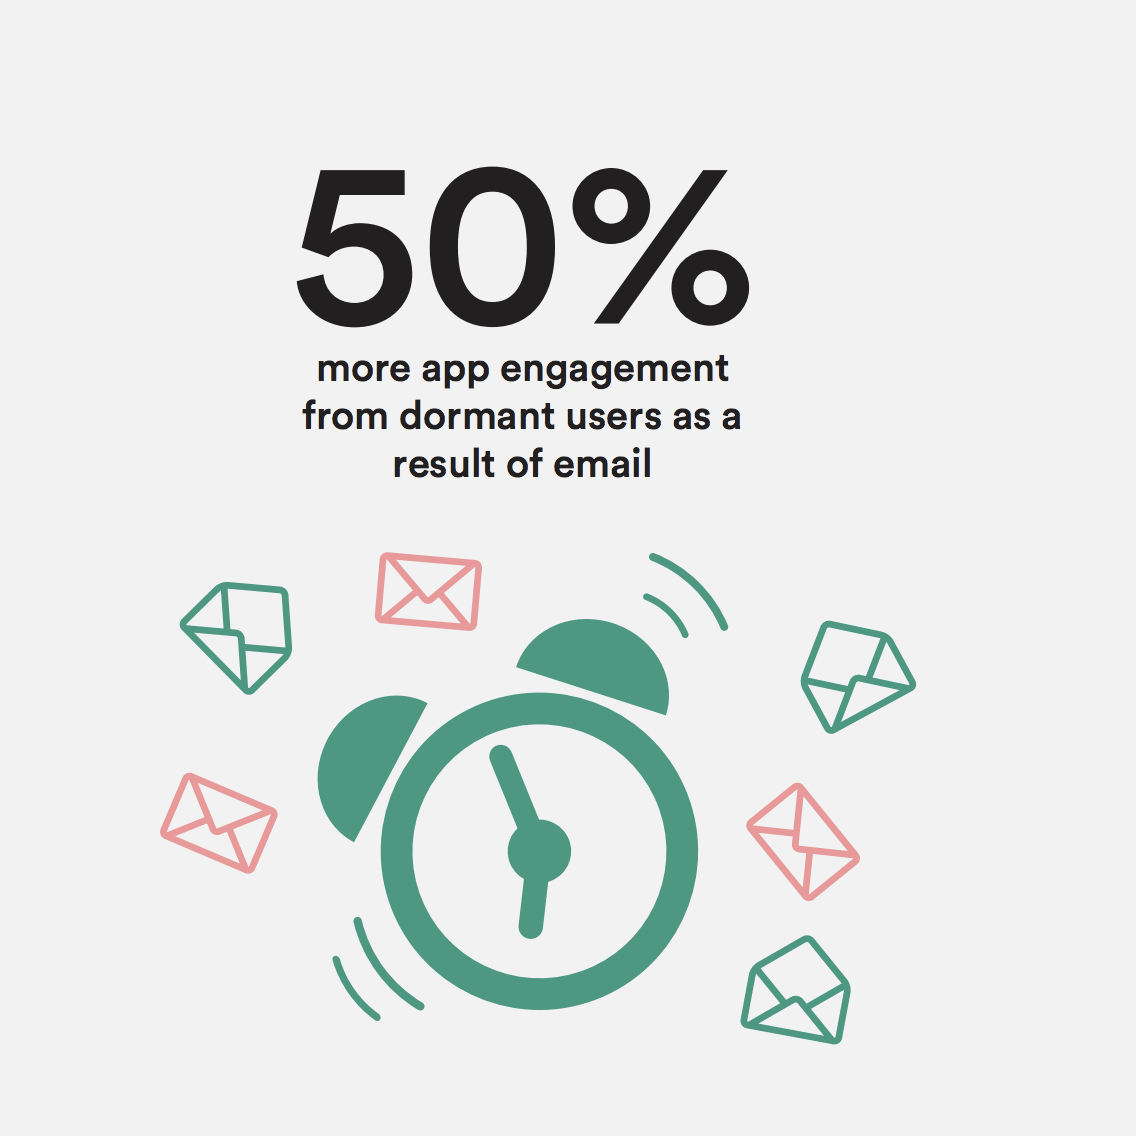 email marketing app engagement